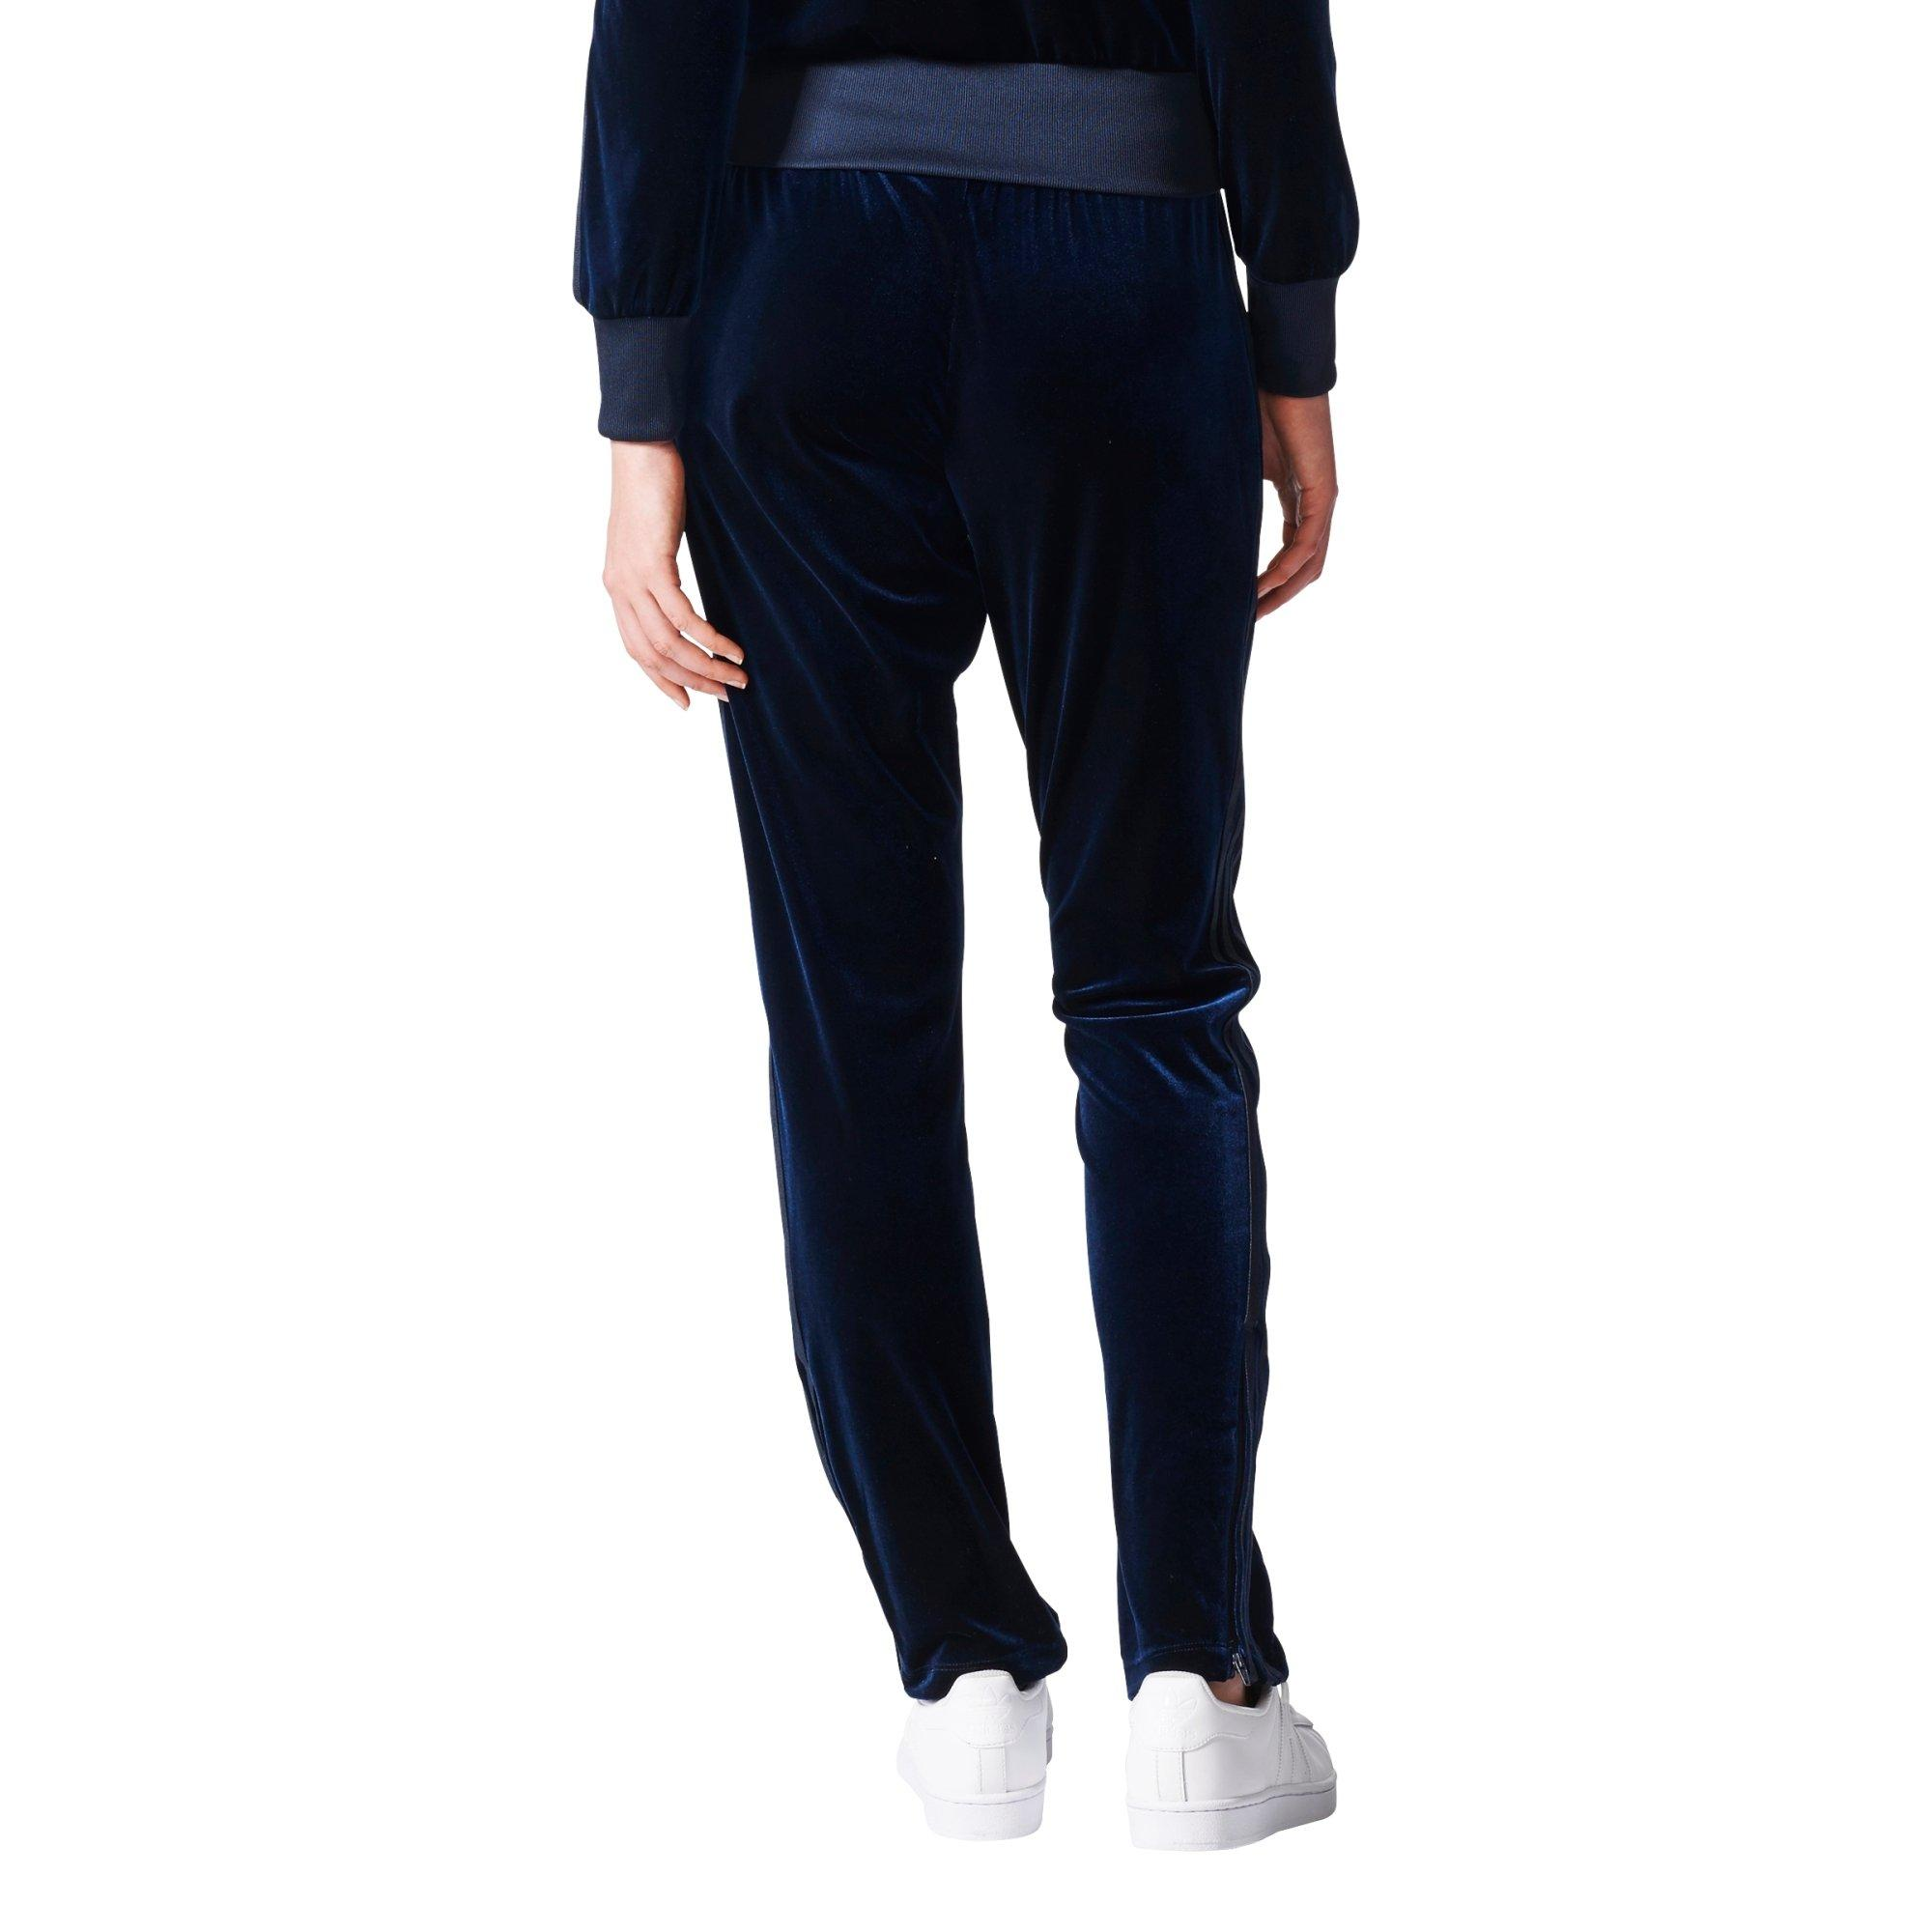 adidas Women\u0027s Firebird Track Pants - Main Container Image 2